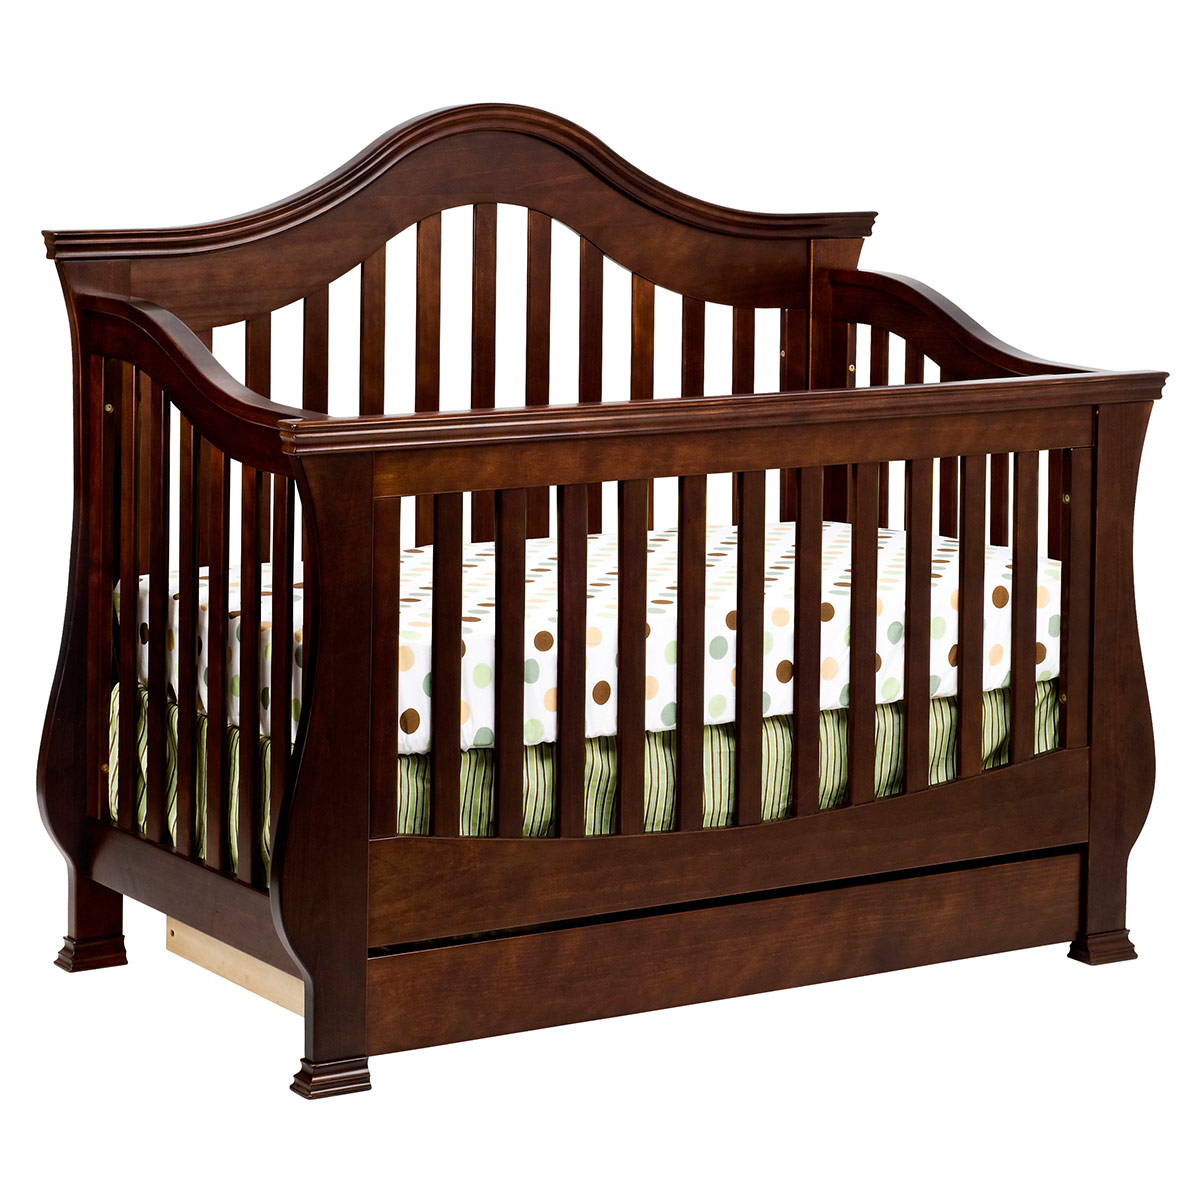 Espresso crib for sale - Million Dollar Baby Classic Ashbury 4 In 1 Sleigh Convertible Crib With Toddler Rail In Espresso Free Shipping